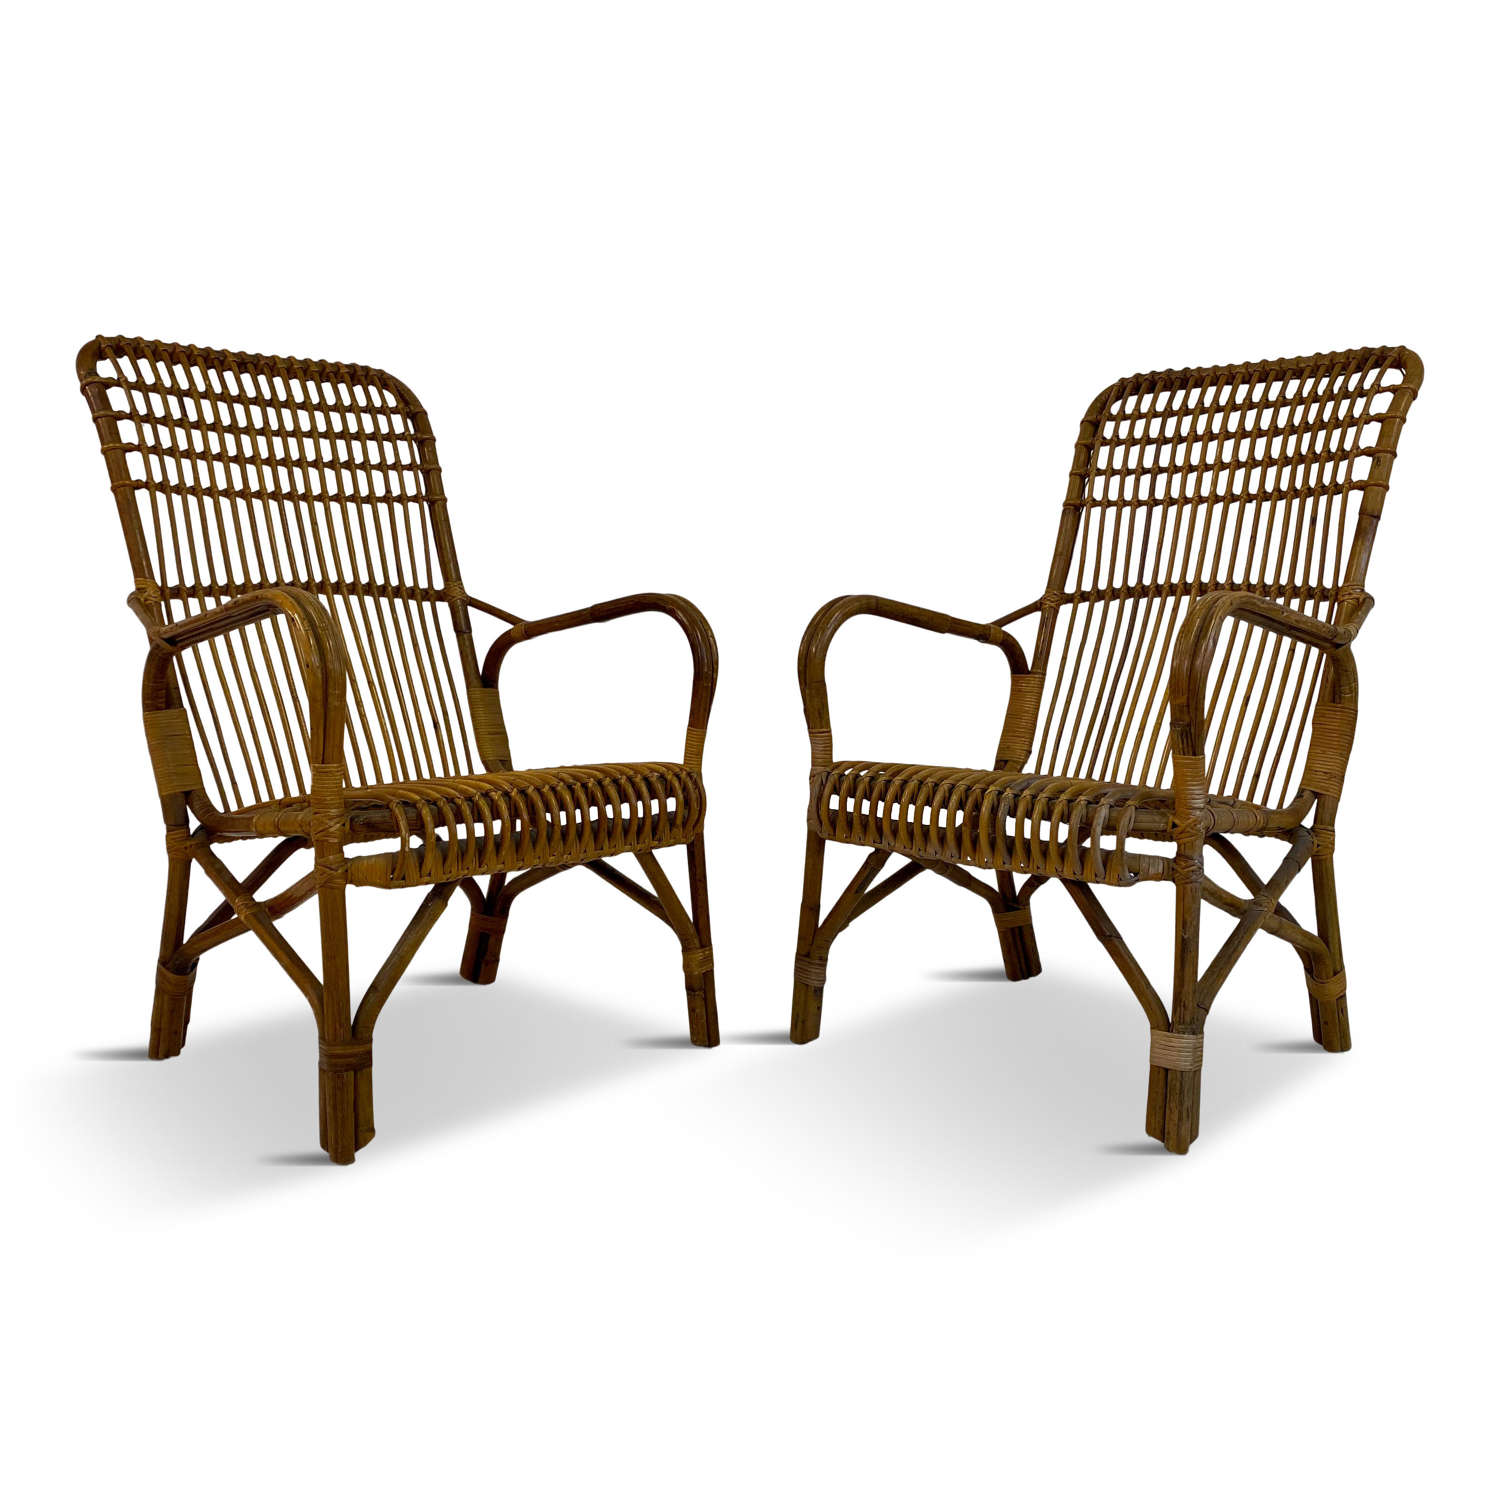 Pair of 1950s Italian Bamboo and Rattan Armchairs